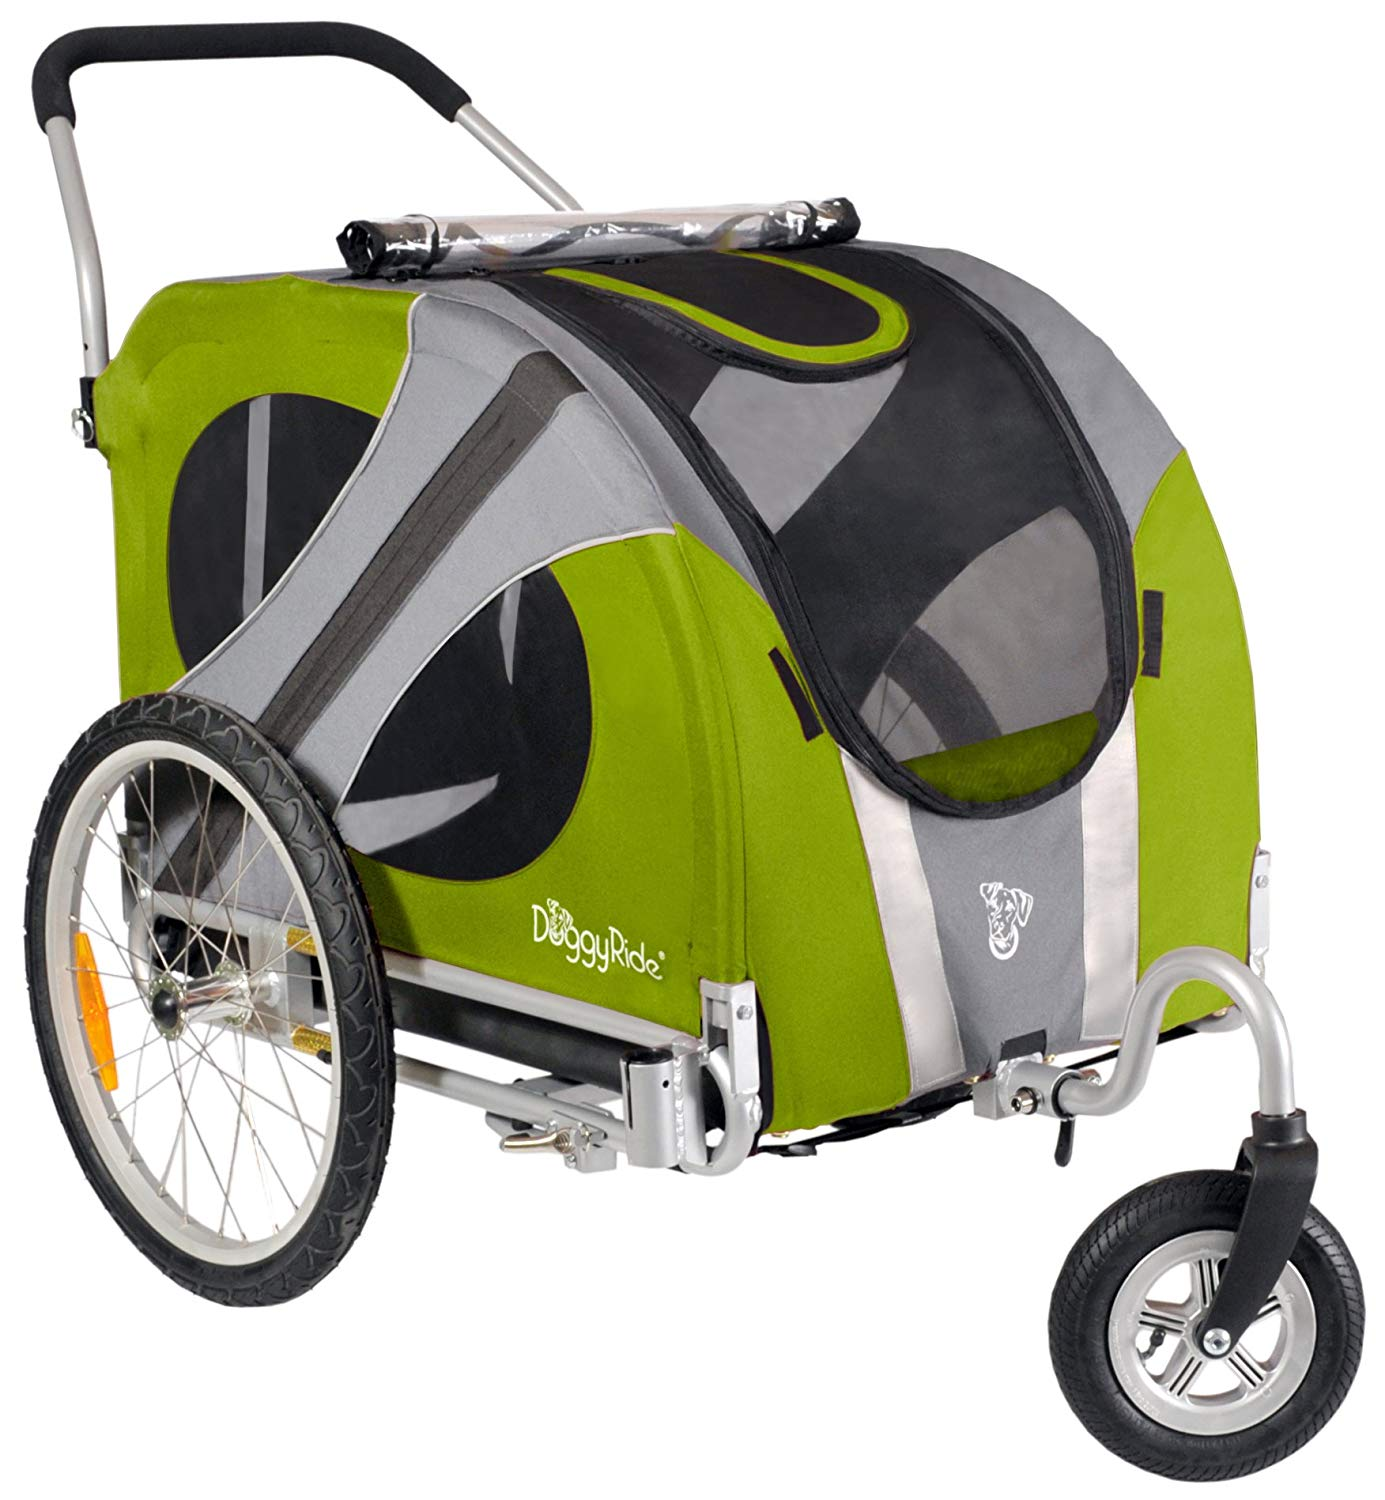 DoggyRide Novel – The Top Performing Dog Stroller